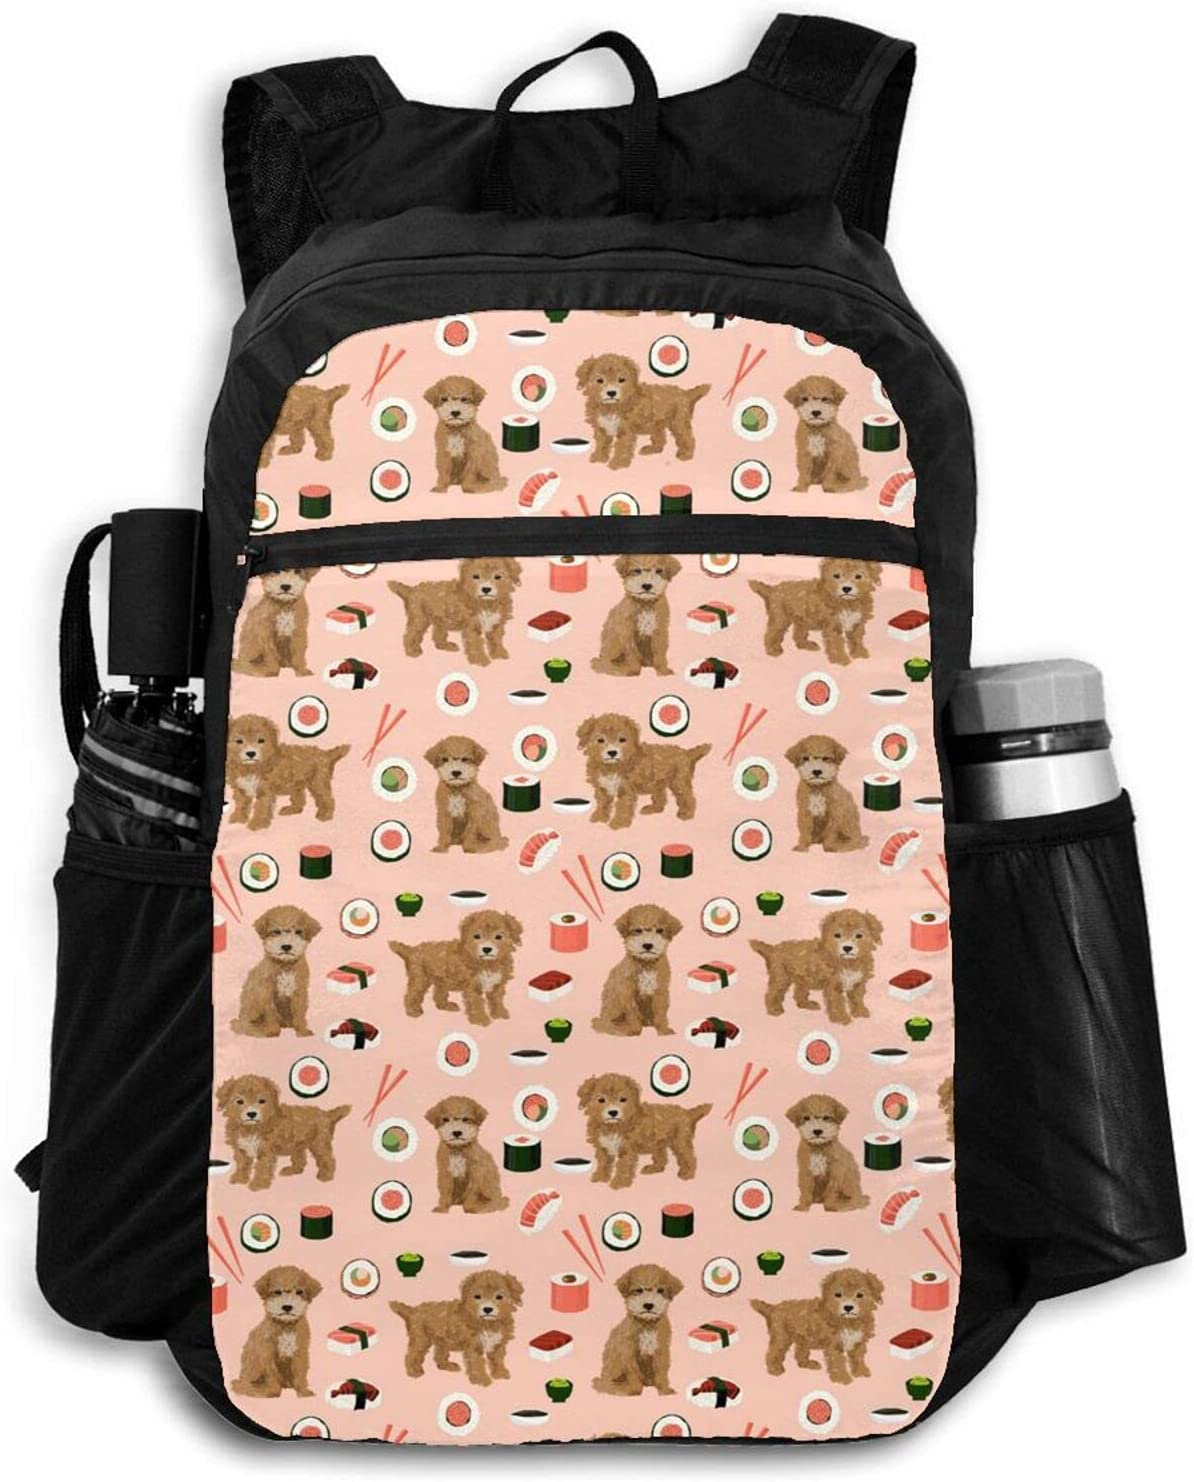 Zolama Cute Sushi Peach Backpacks Limited time cheap sale Large-scale sale for Men Women Packable Da